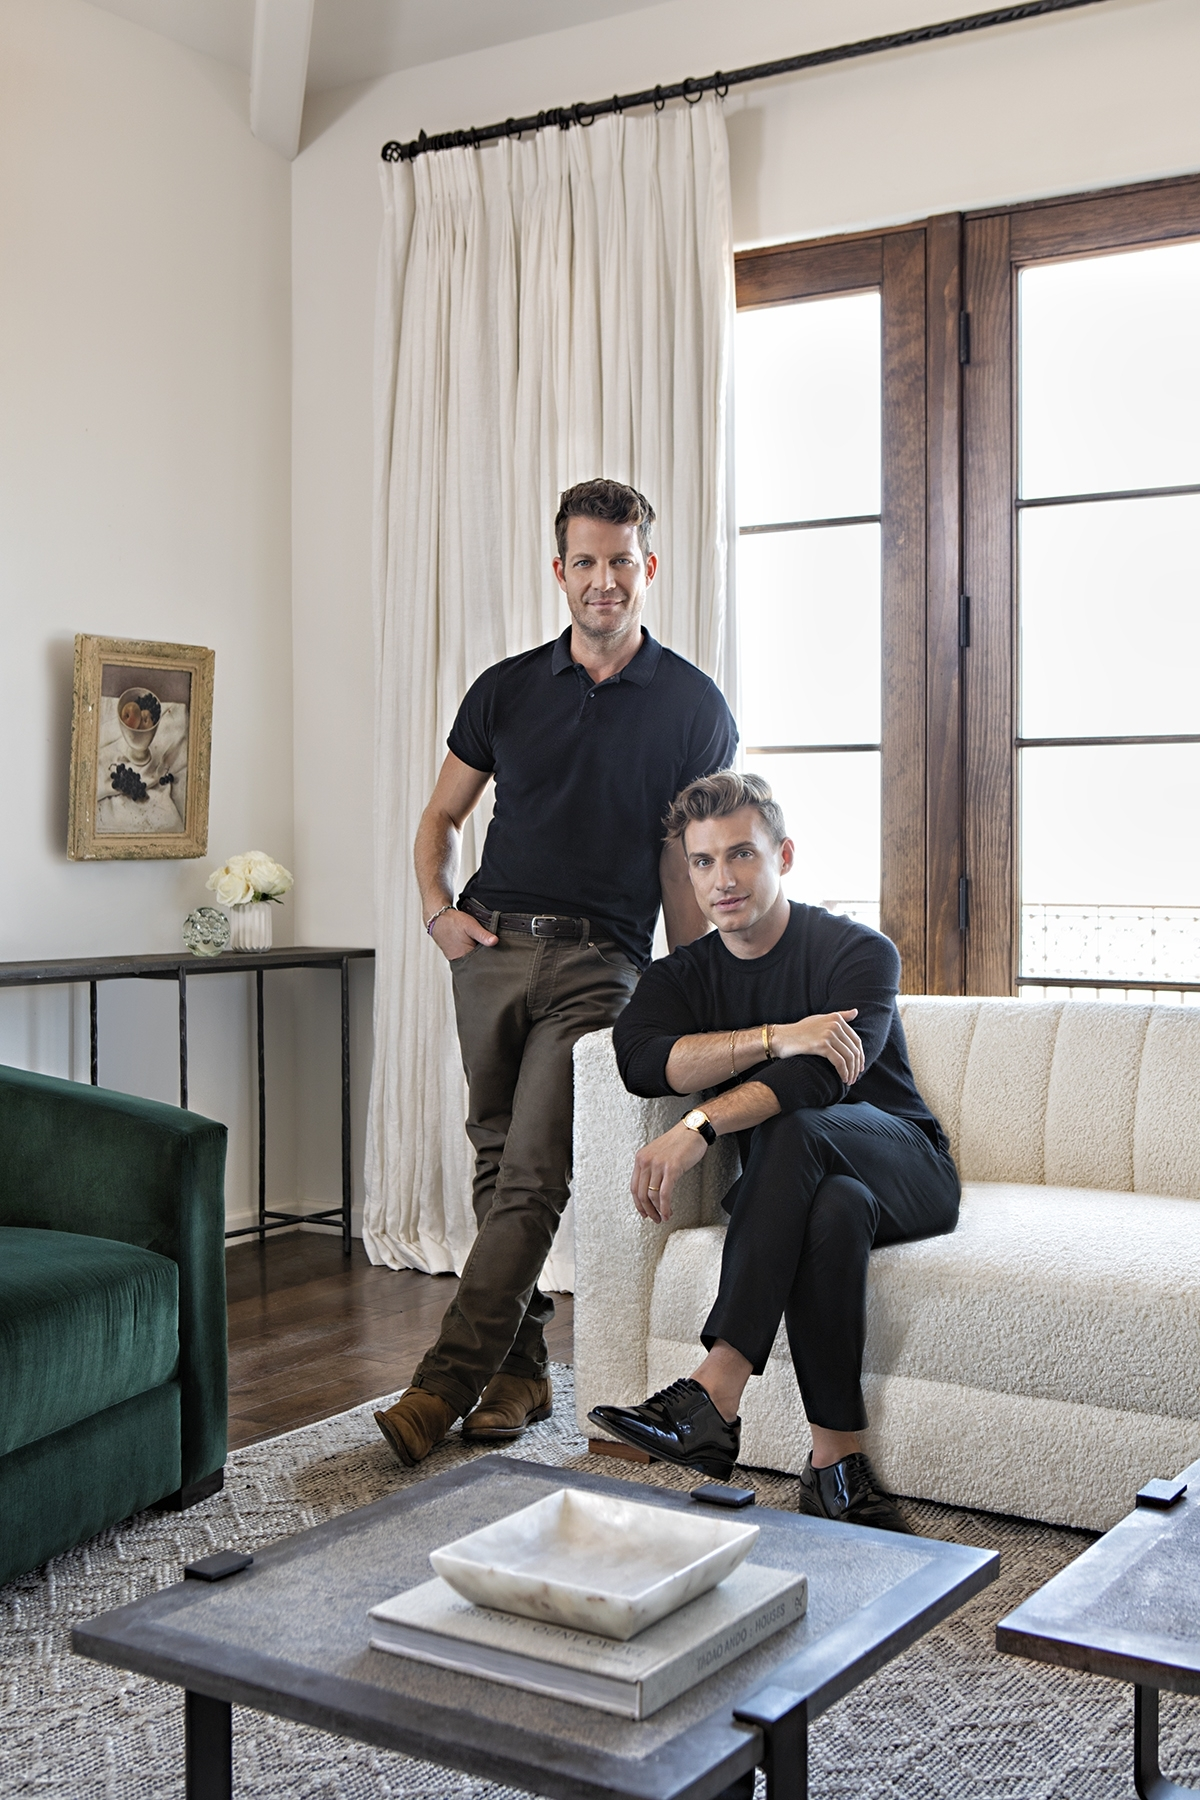 Nate Berkus & Jeremiah Brent's Newest Affordable Collection | Rue Throughout Whitley 3 Piece Sectionals By Nate Berkus And Jeremiah Brent (Photo 20 of 32)